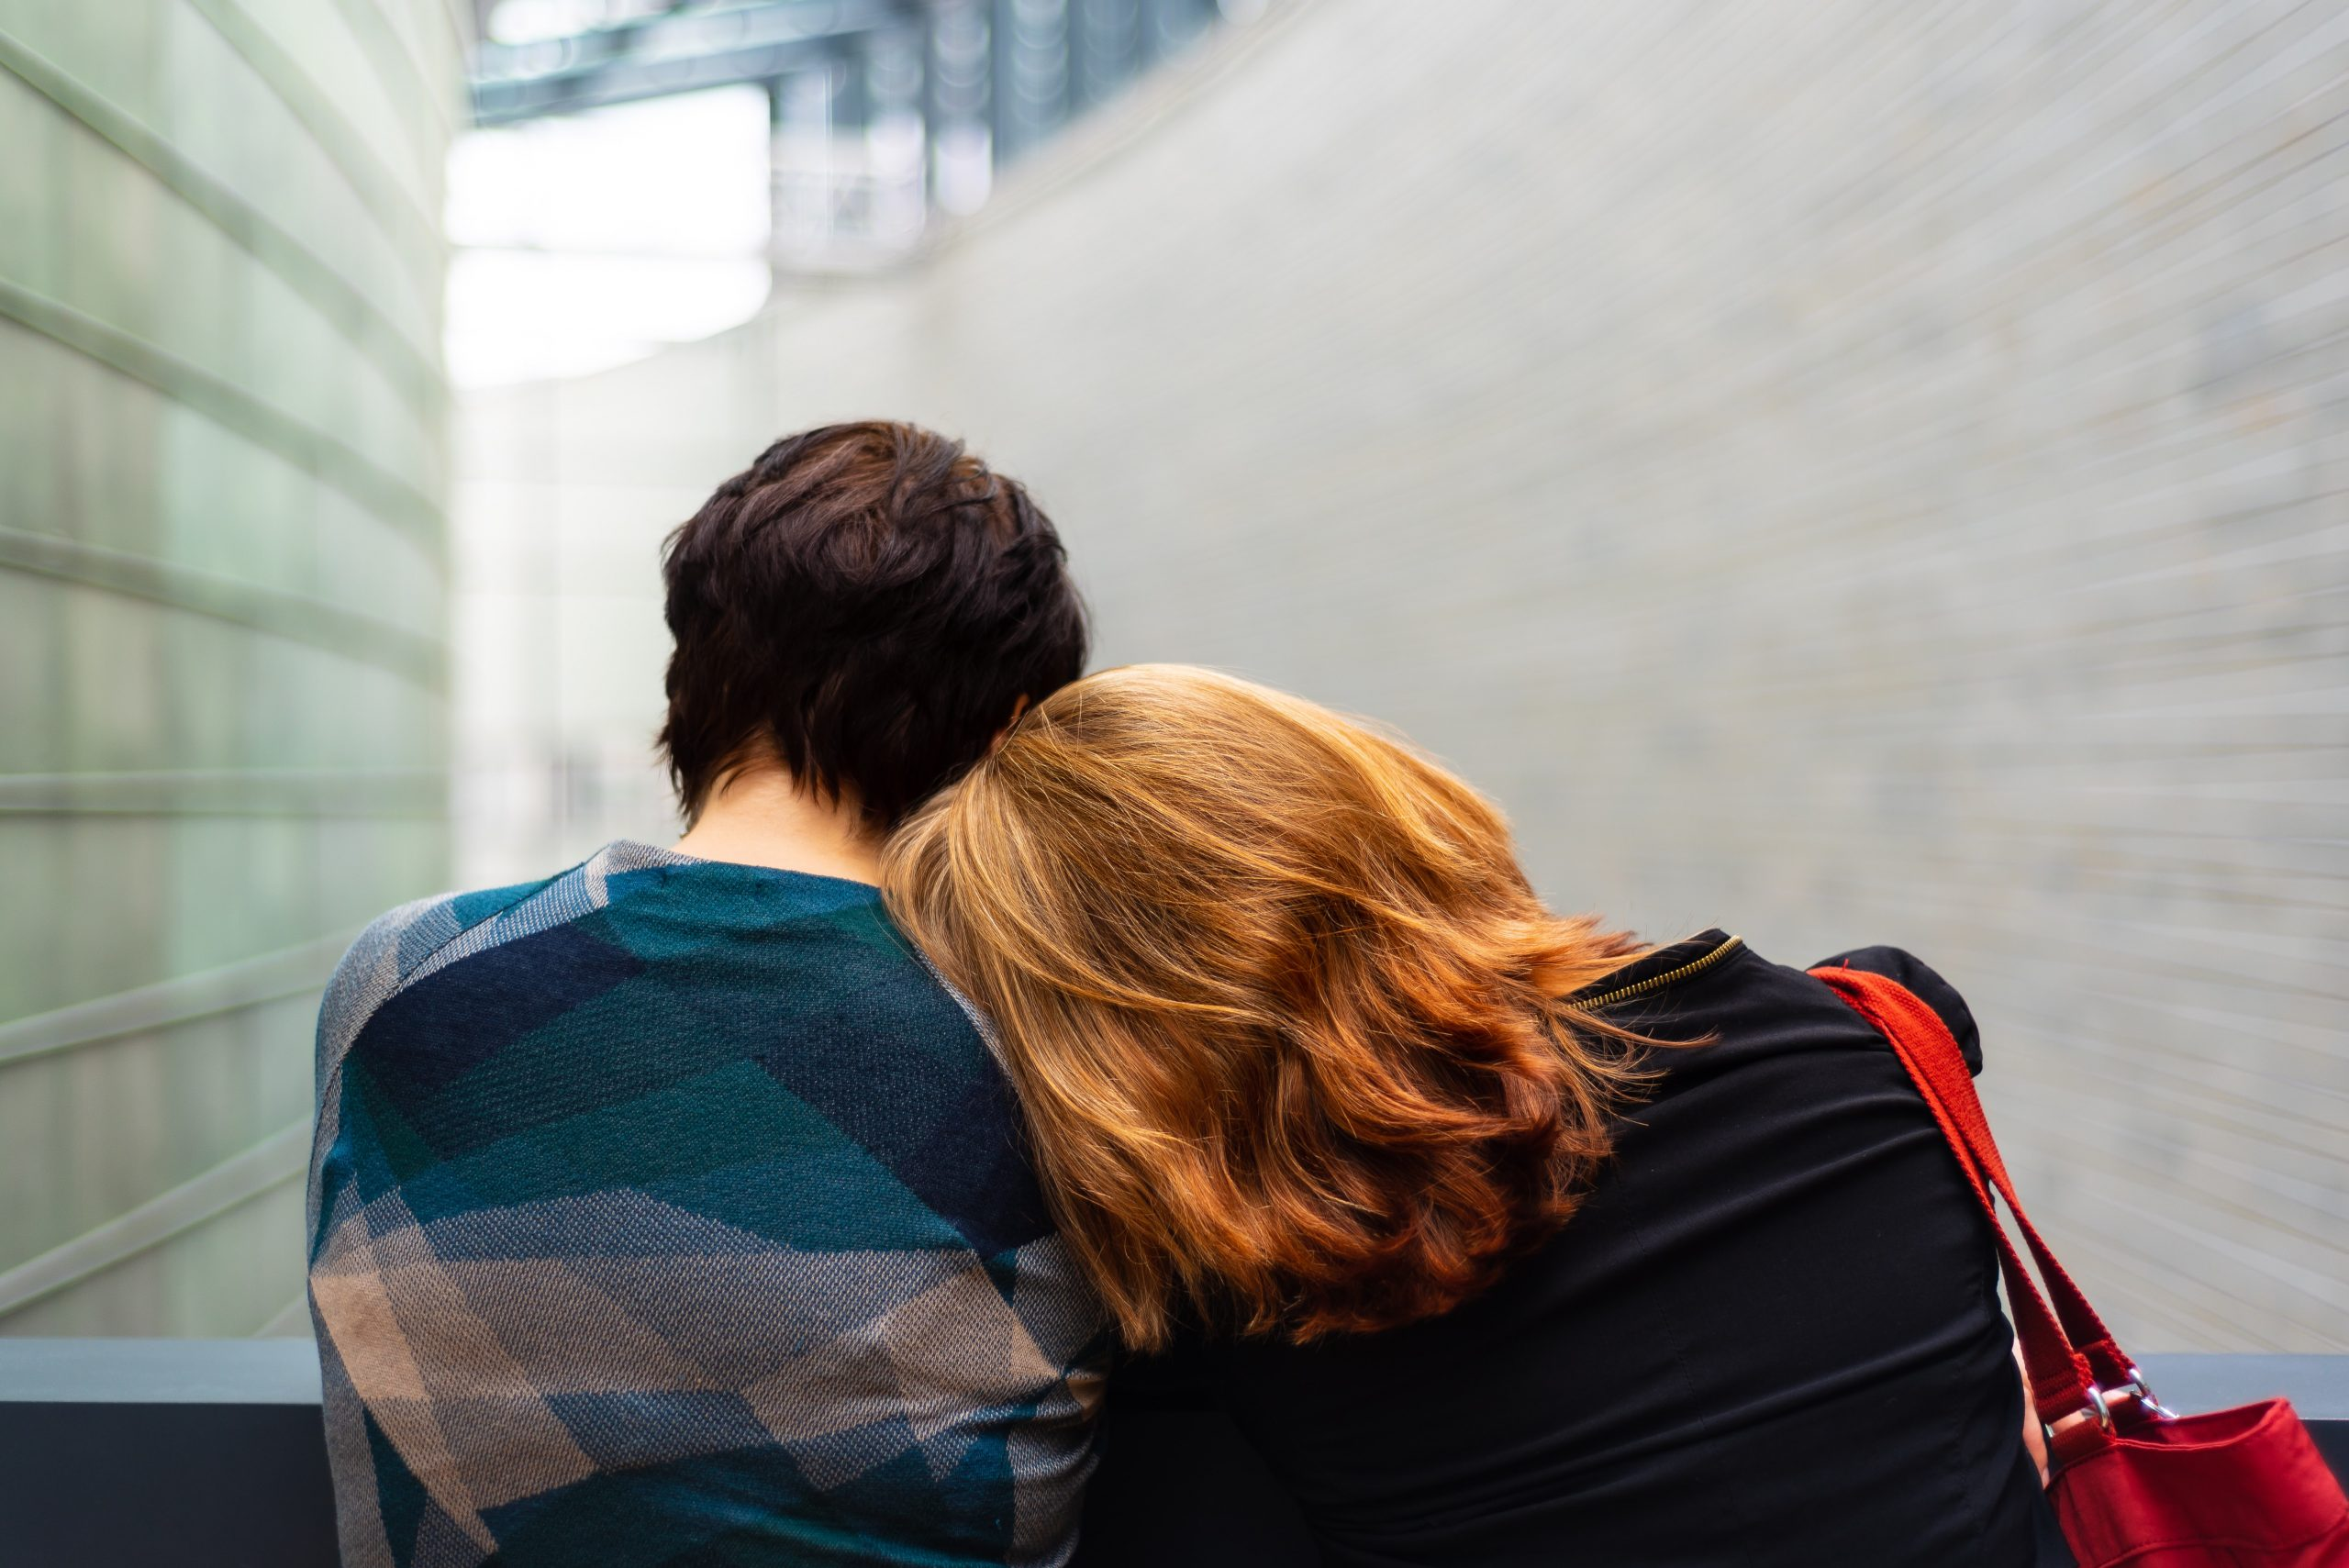 """Why Suicide Prevention is More Than Just """"I'm Here for You"""""""